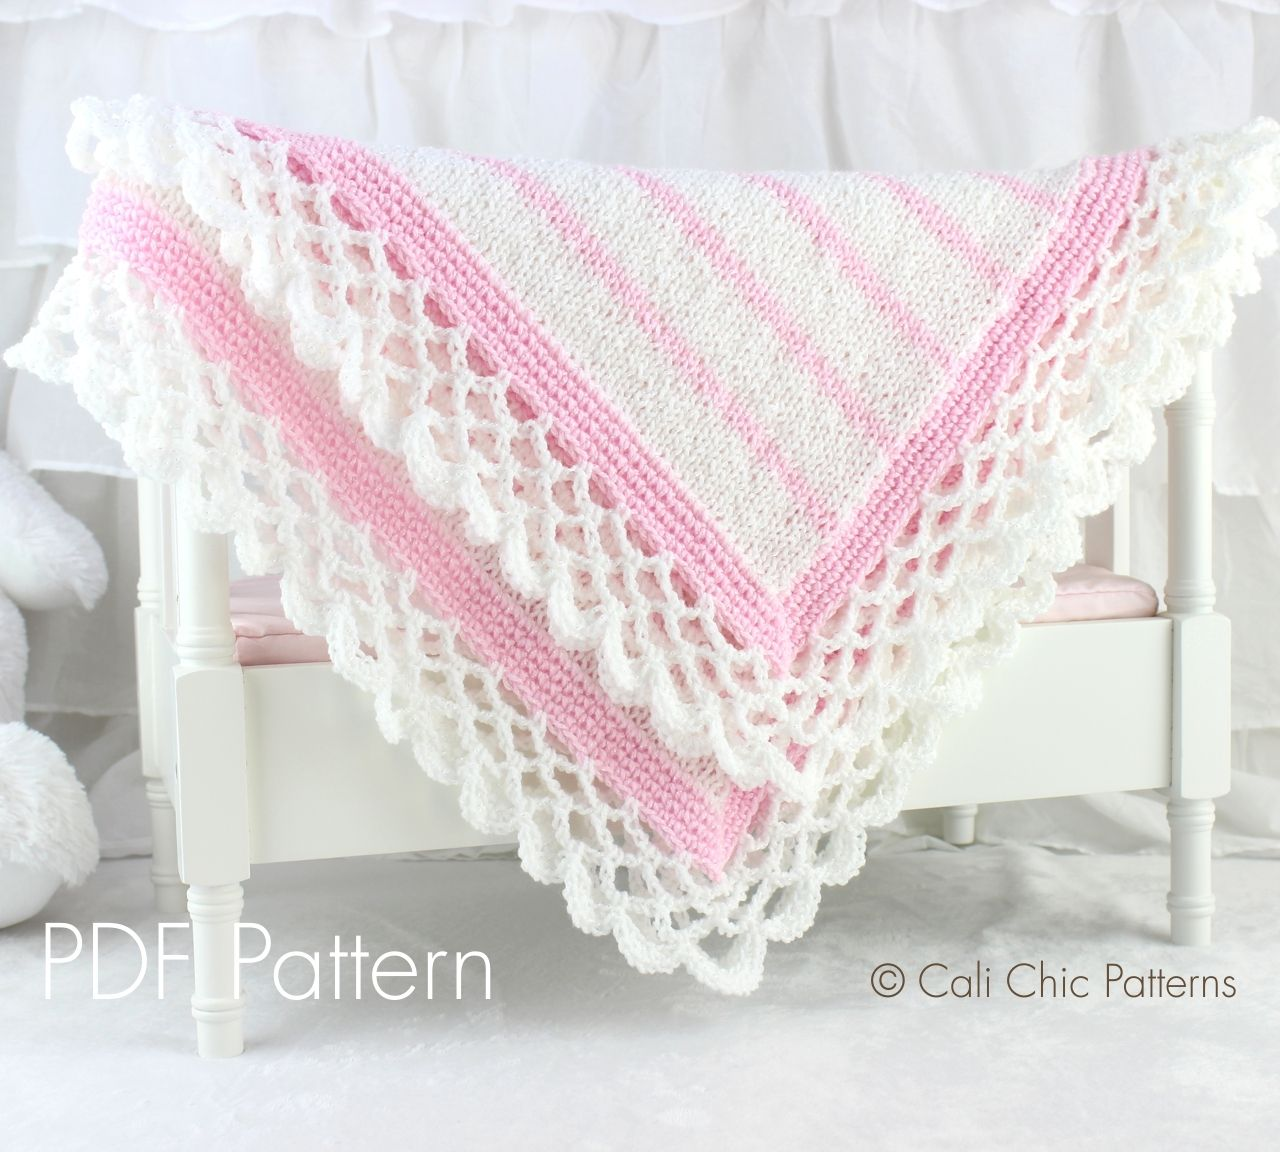 Cali Chic Patterns - Crystal Lace - Knit Baby Blanket PATTERN 68 ...